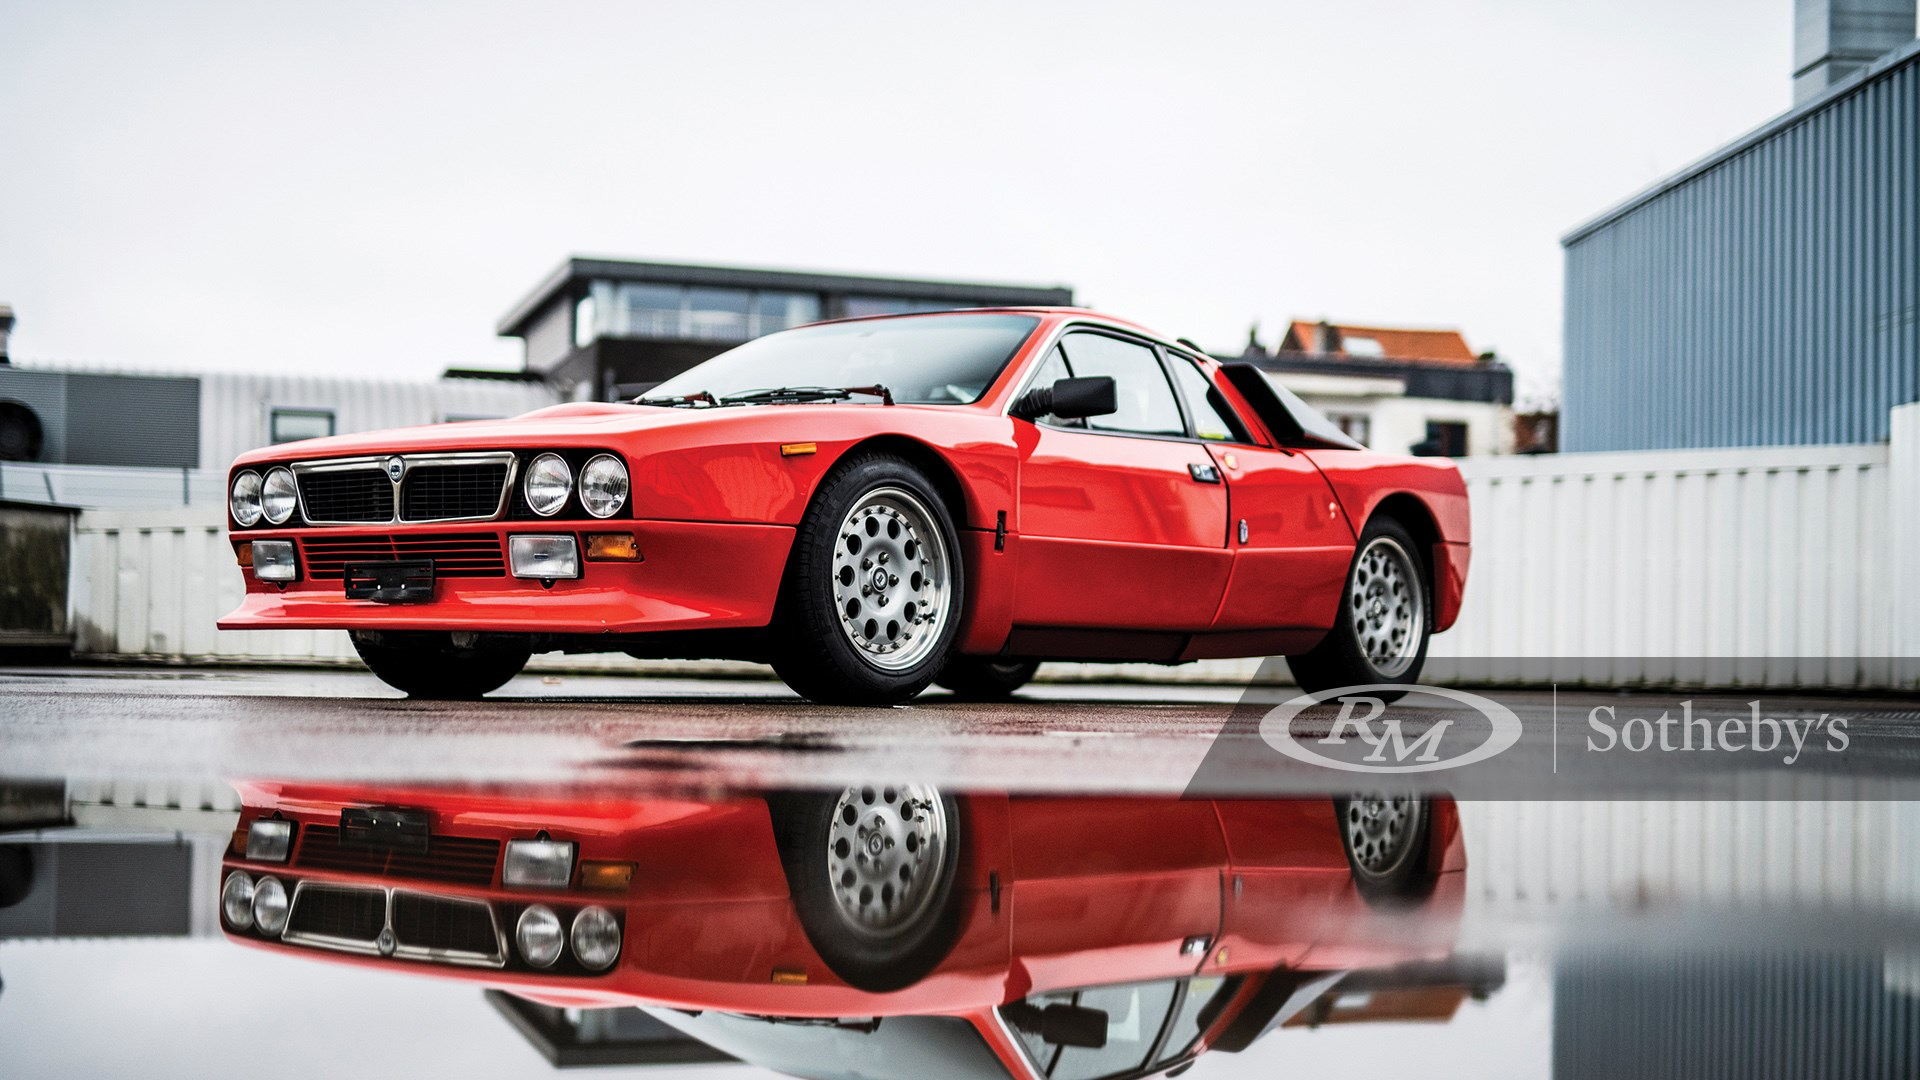 The European Sale Featuring The Petitjean Collection, 1981 Lancia 037 Stradale